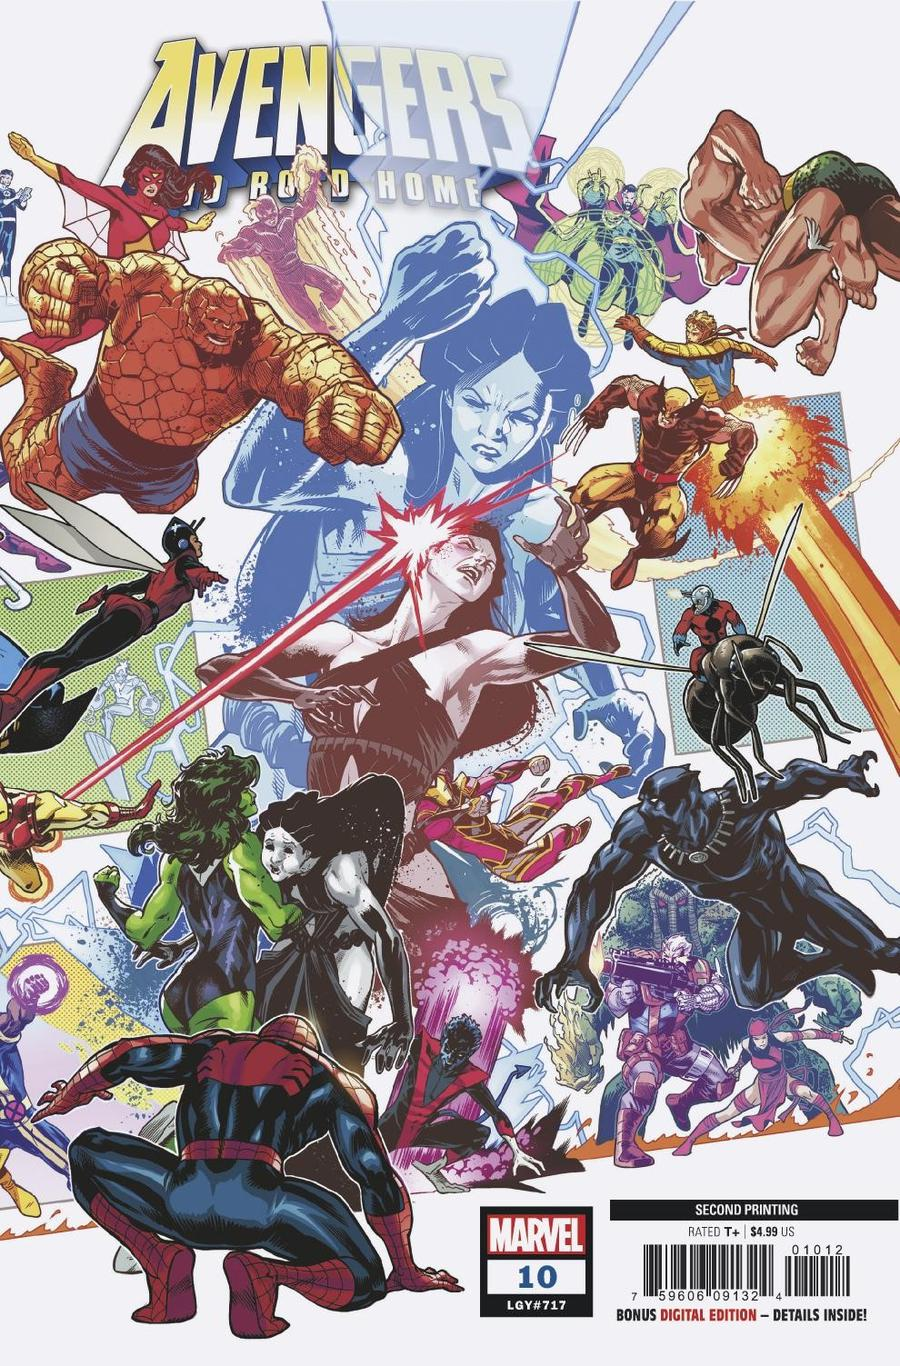 Avengers No Road Home #10 Cover C 2nd Ptg Variant Sean Izaakse Cover